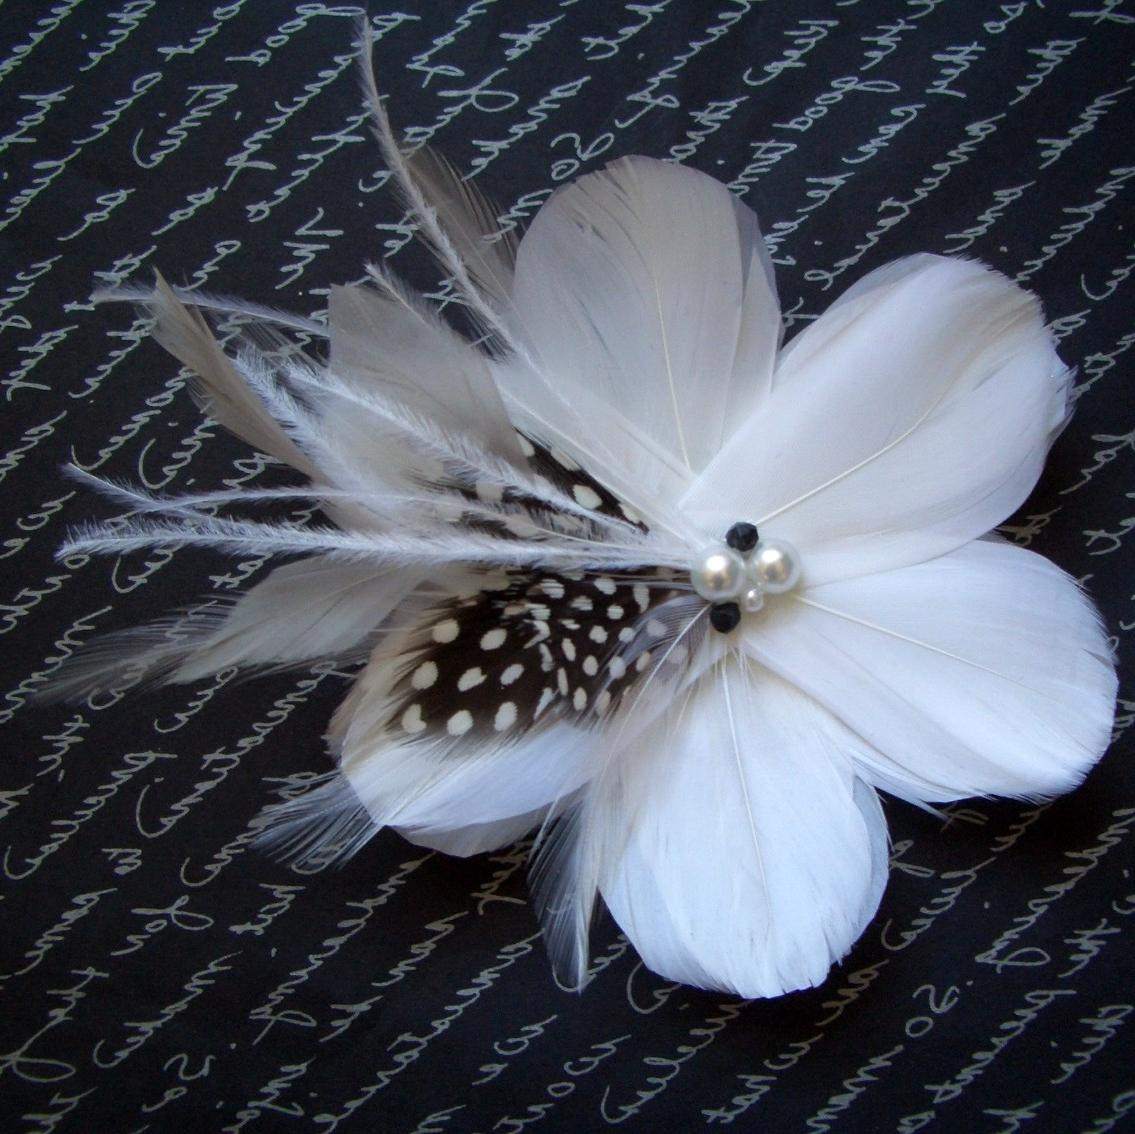 BLACK AND WHITE - Bridal Flower with Black White and Shades of Grey